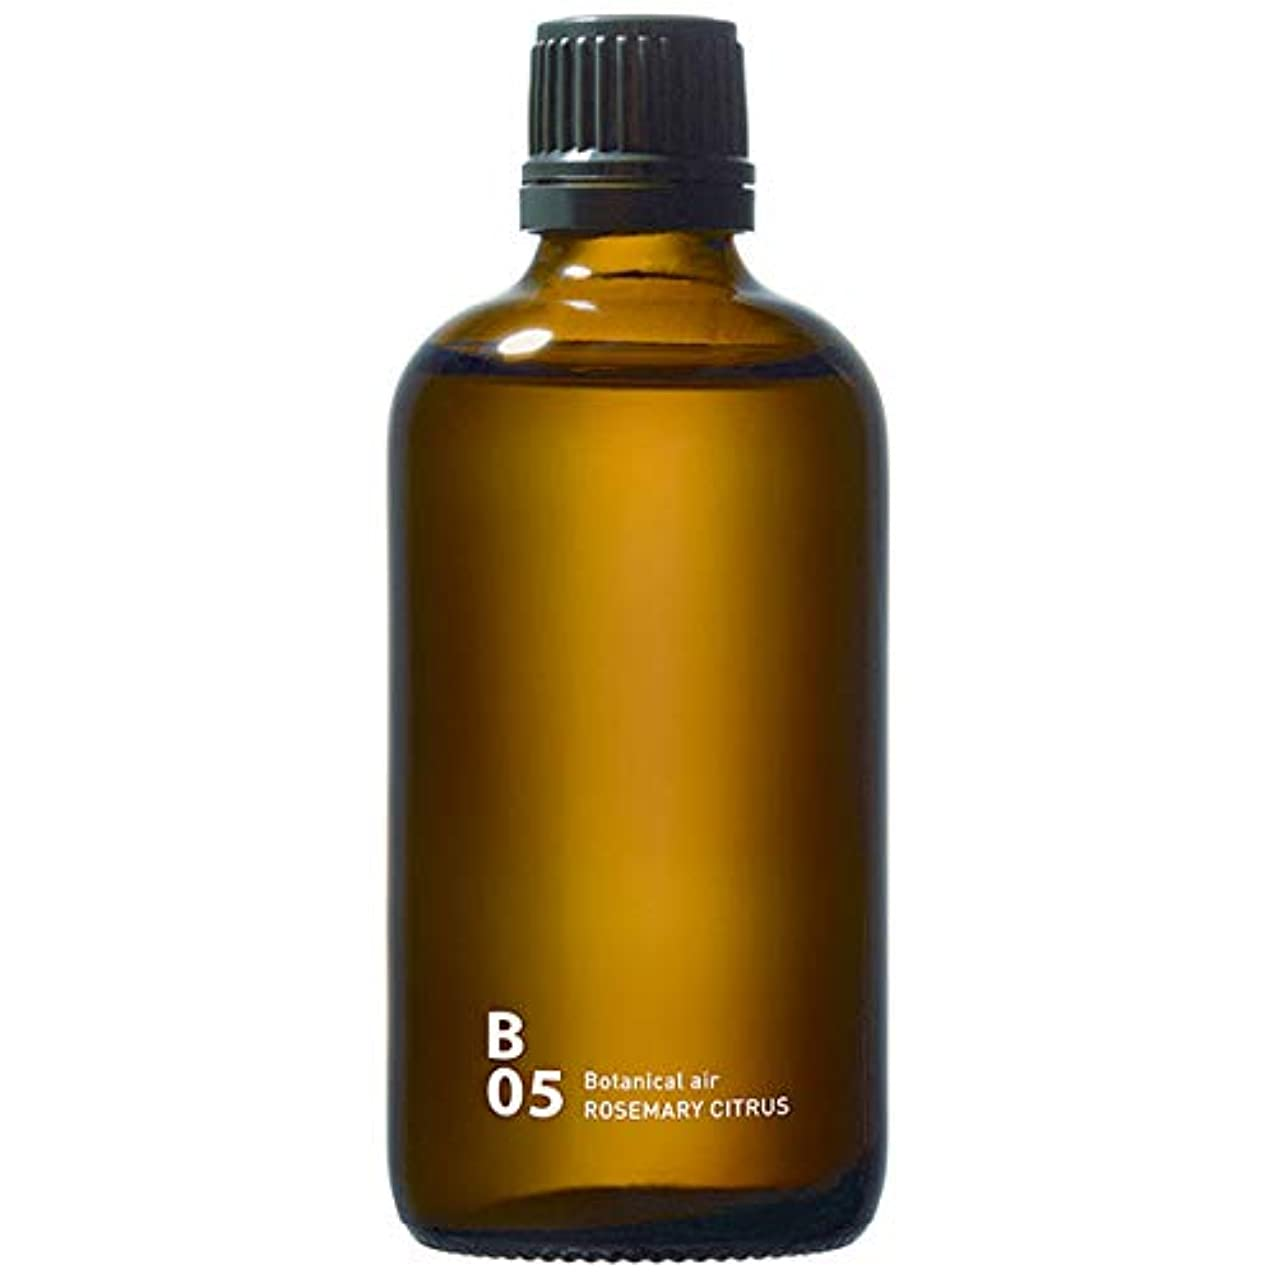 句豊富に欠点B05 ROSEMARY CITRUS piezo aroma oil 100ml